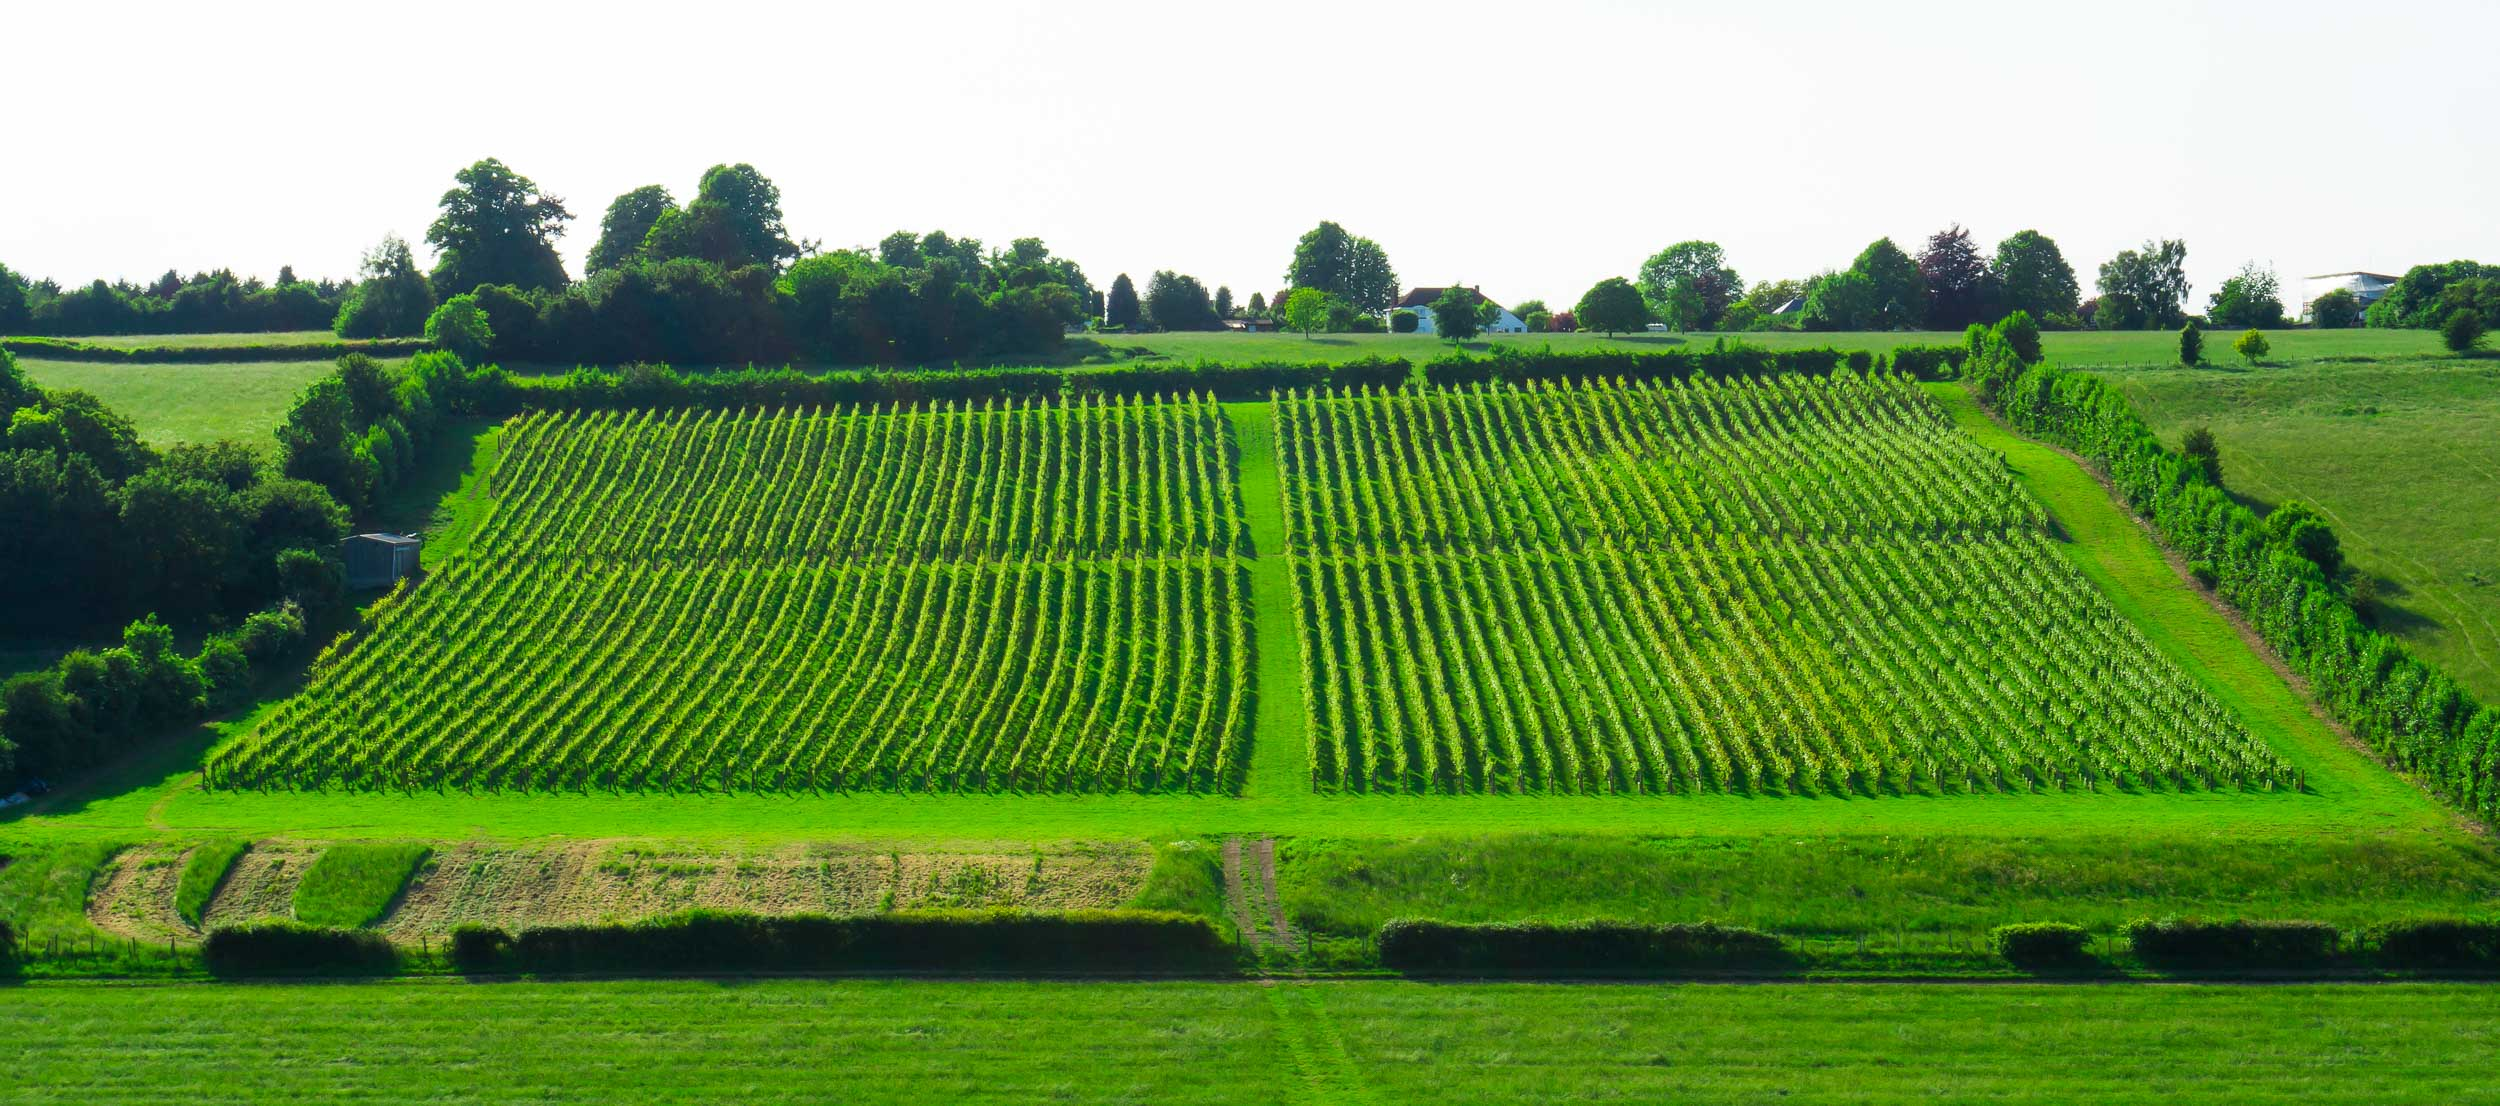 Meopham-Valley-Vineyard-Kent-English-Wine-Tour-1